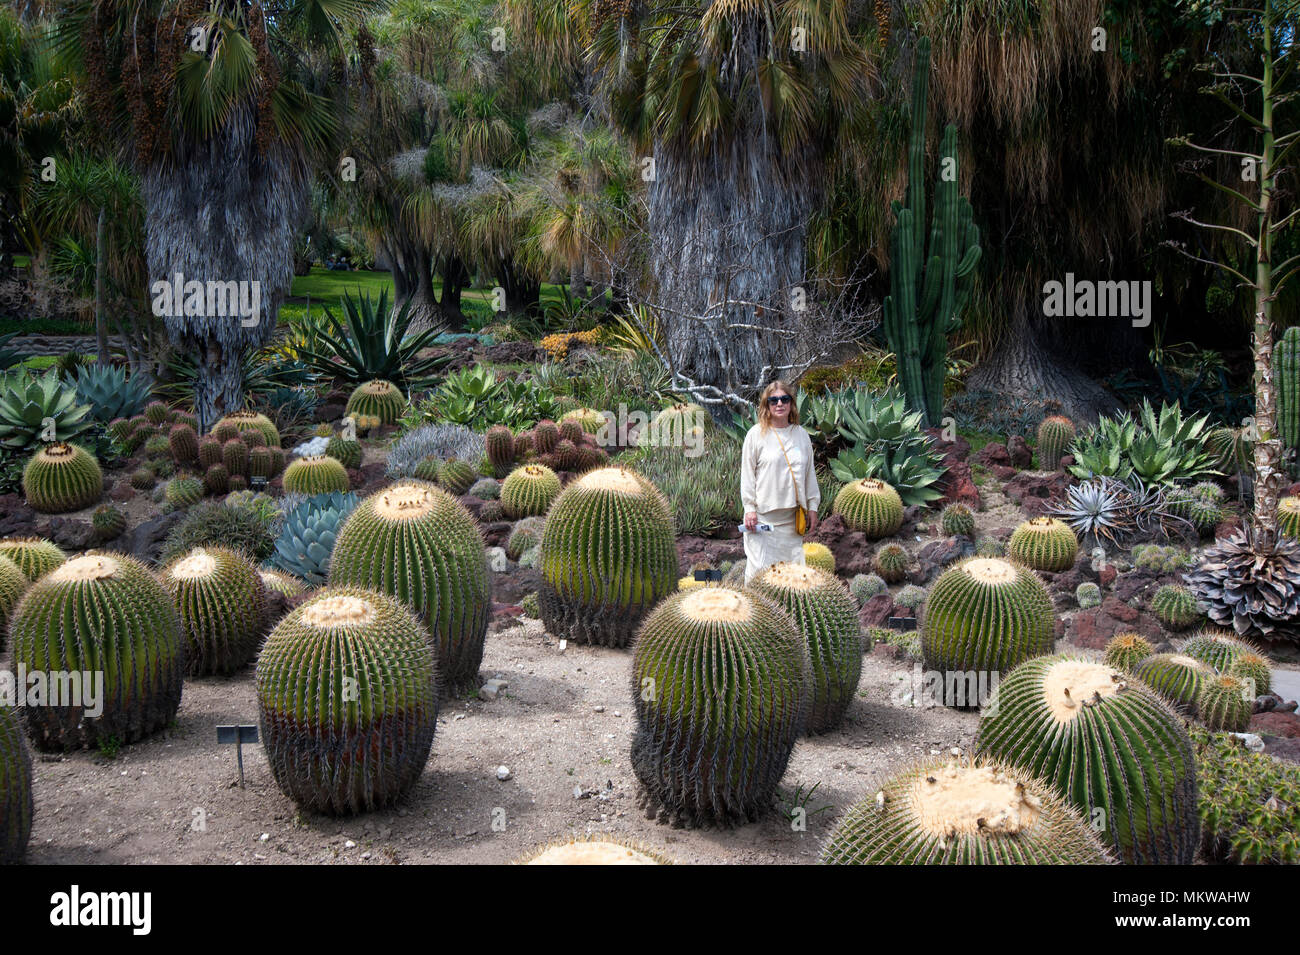 Visitor at the cactus garden in the Huntington Gardens at Pasadena, CA Stock Photo